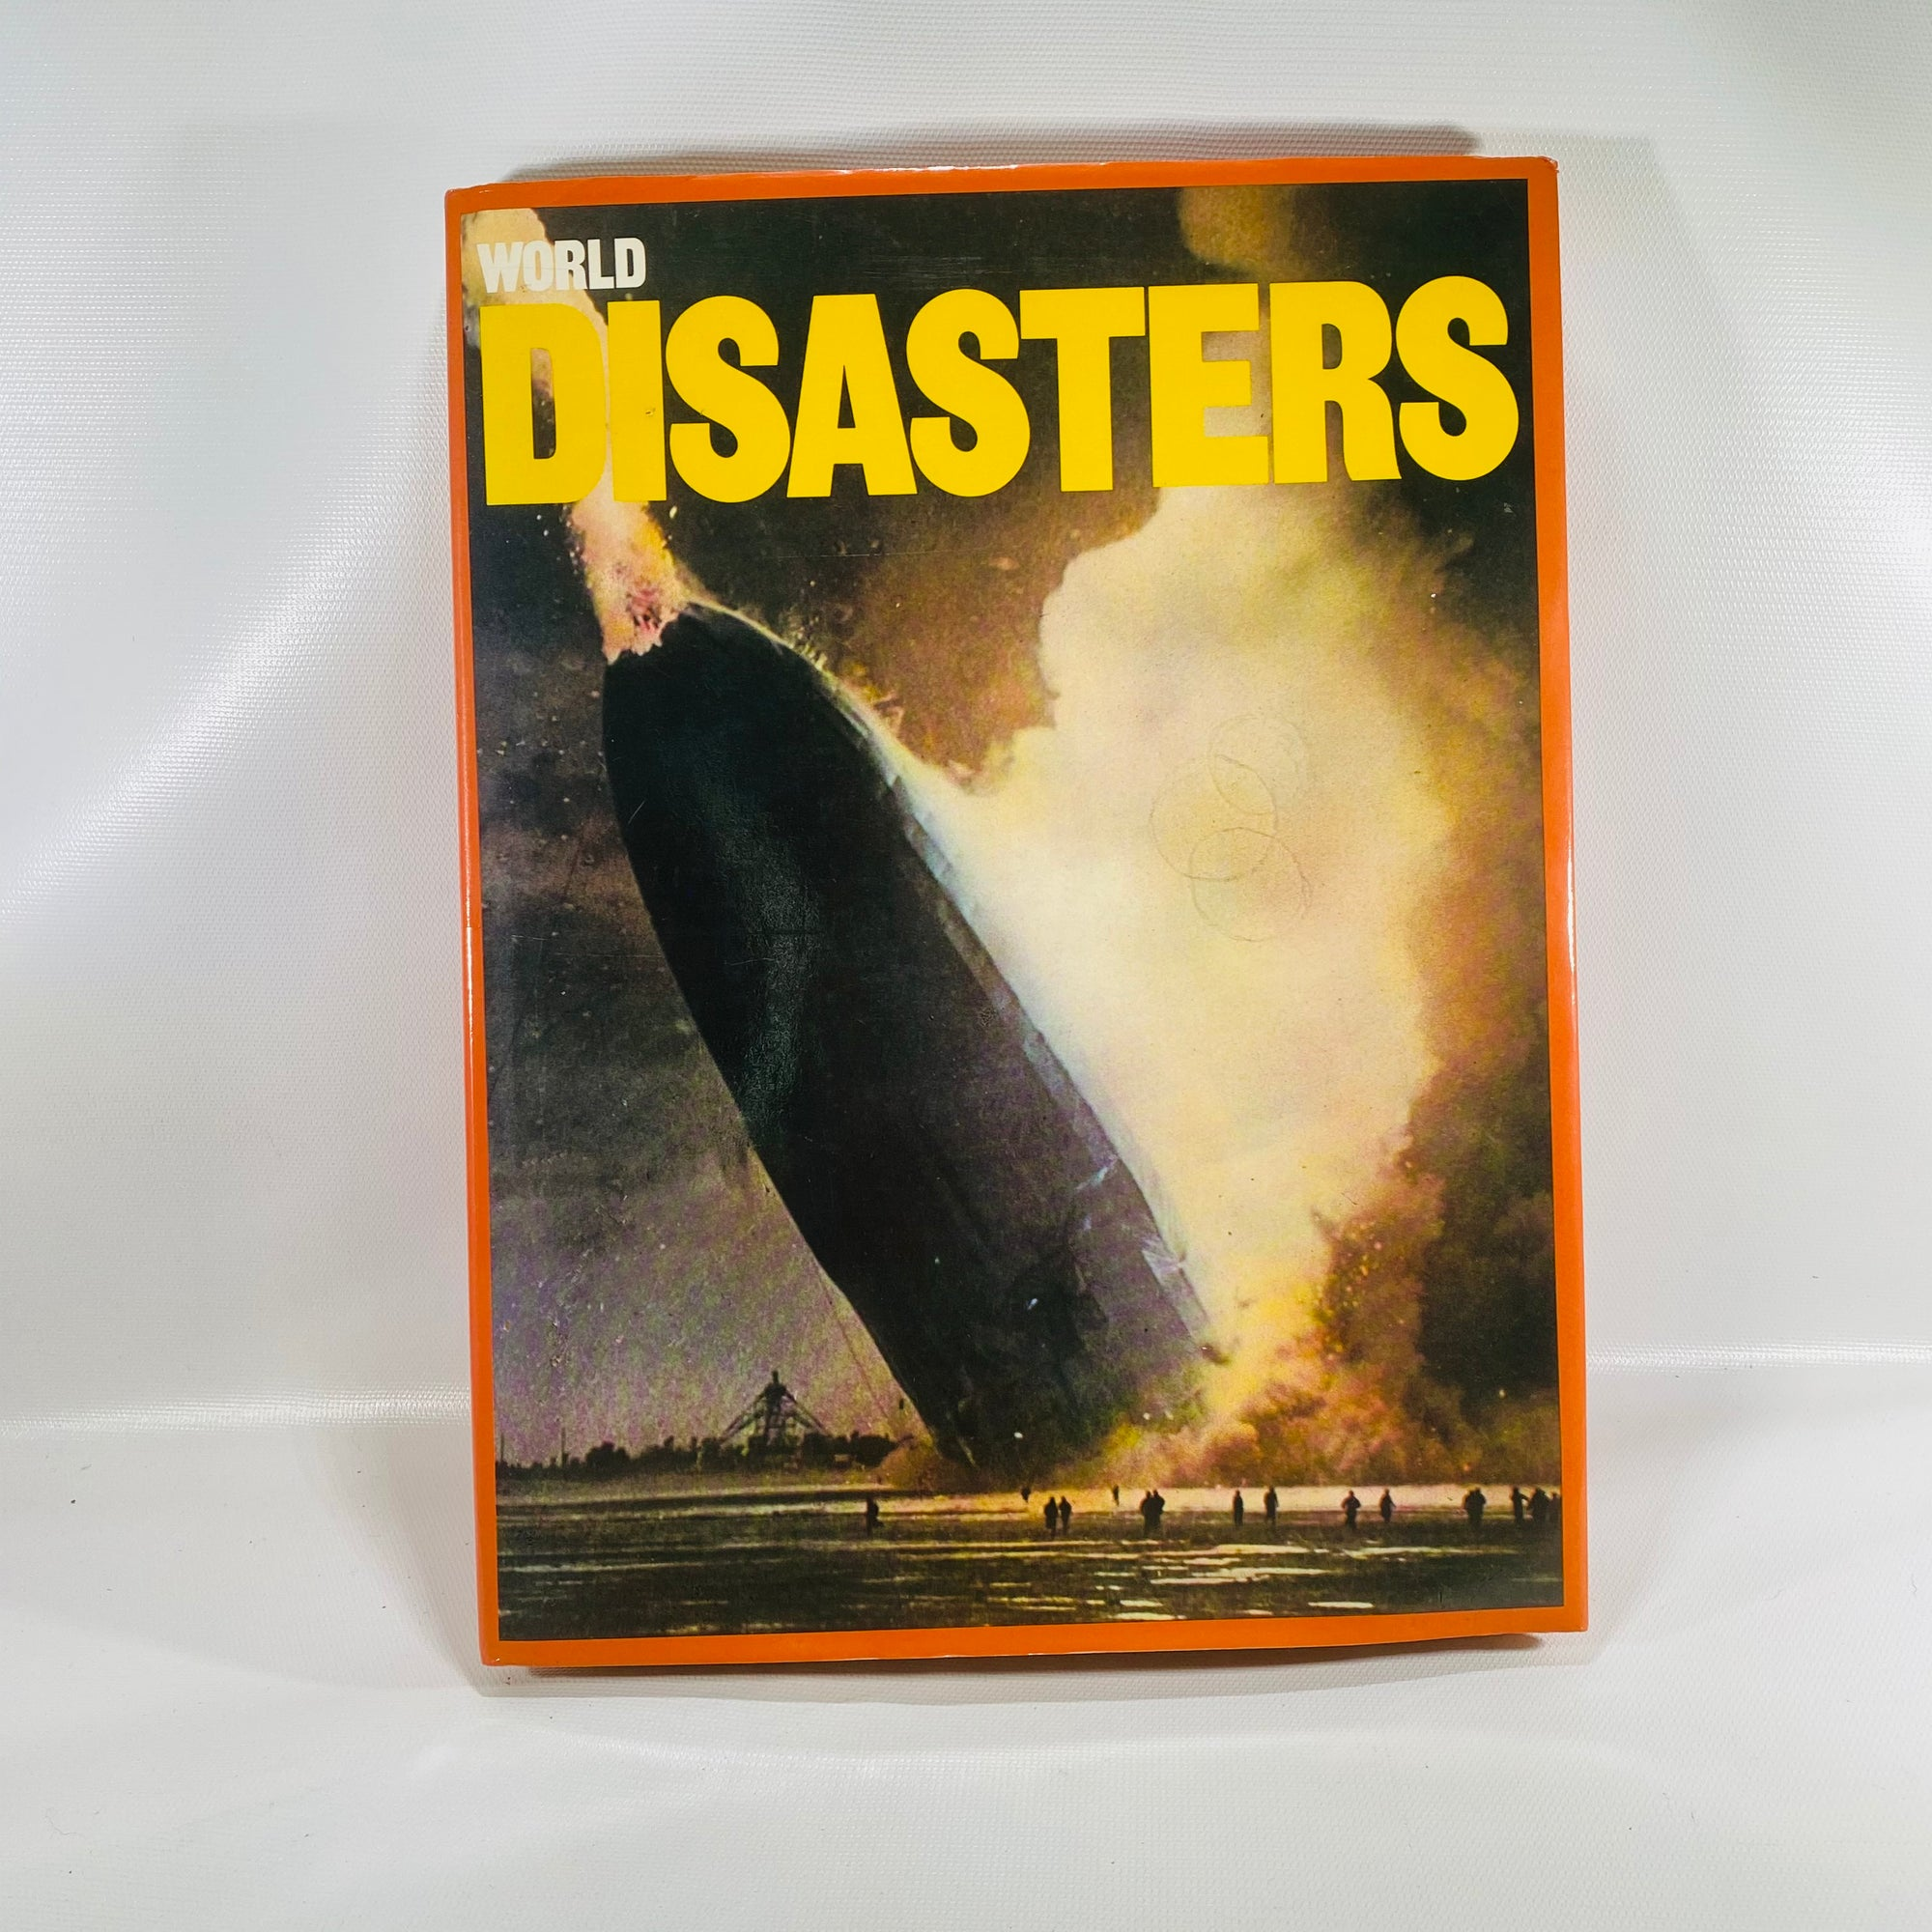 World Disasters by Micheal Prideaux 1976-Reading Vintage